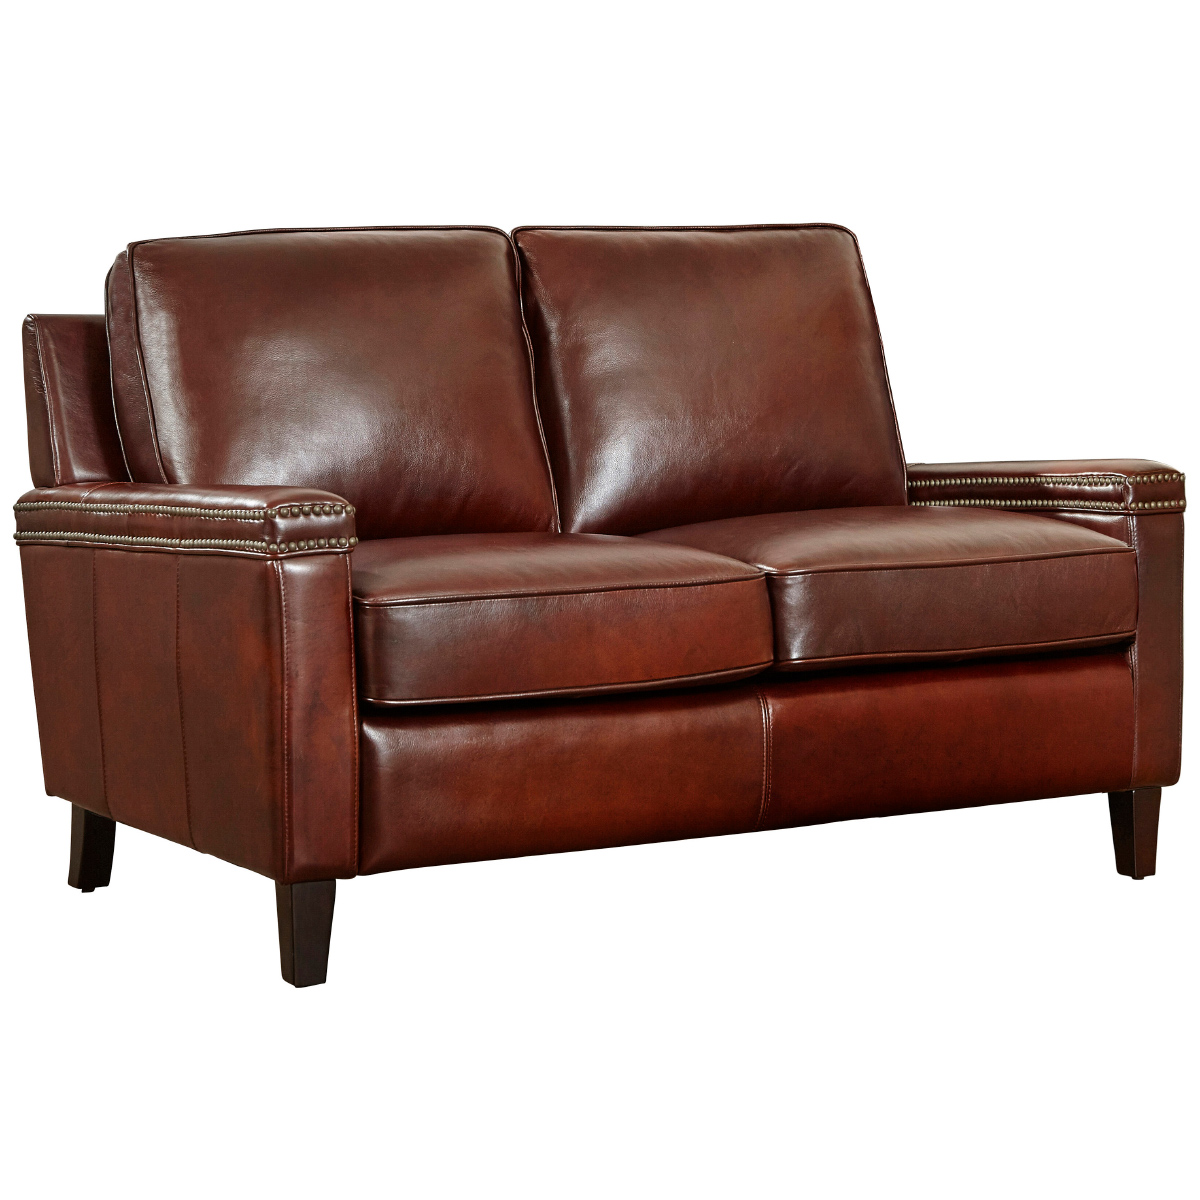 Tremendous Magnus Loveseat In Cinnamon Signature Leather W Nailhead Detail By Lazzaro Furniture Alphanode Cool Chair Designs And Ideas Alphanodeonline